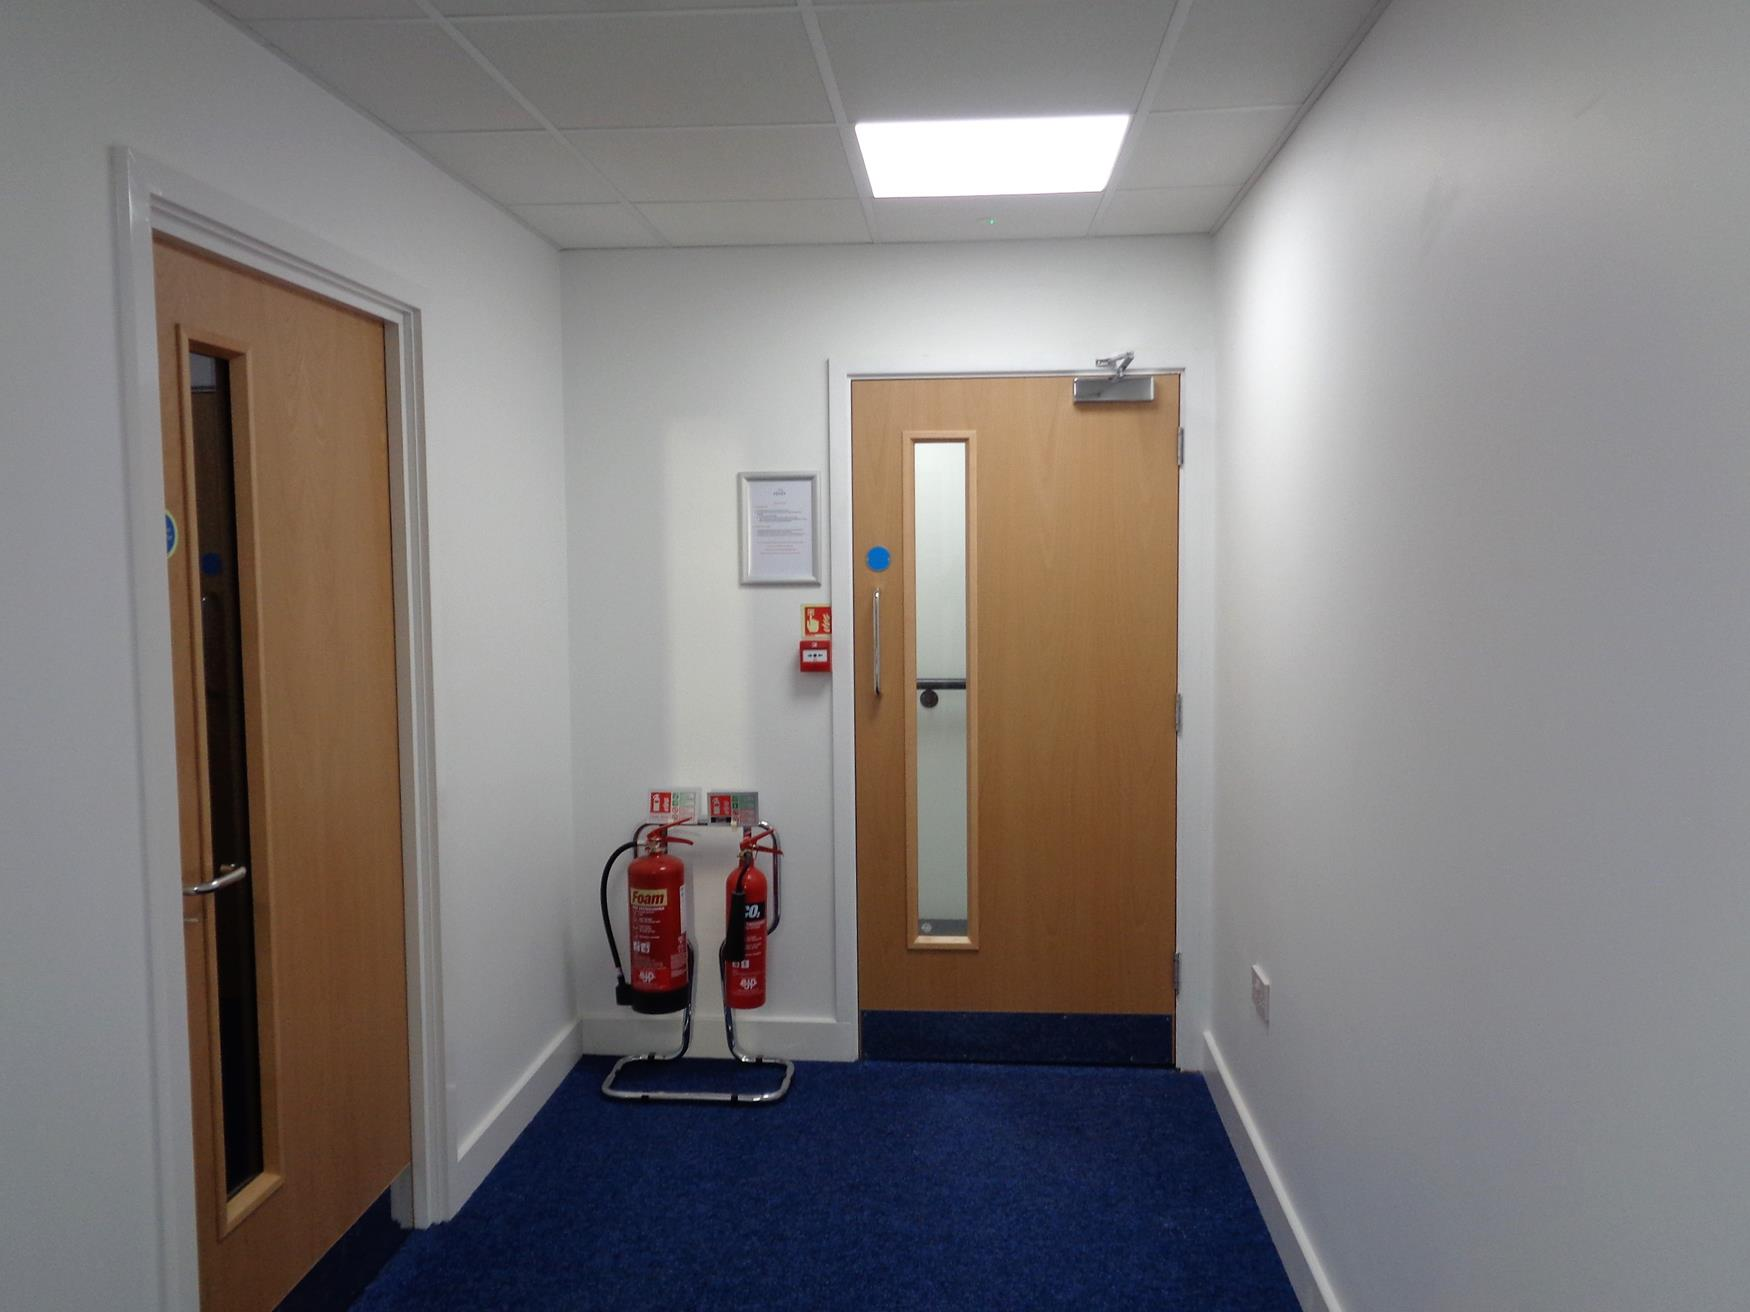 Staff DPA offices and toilets on mezzanine level